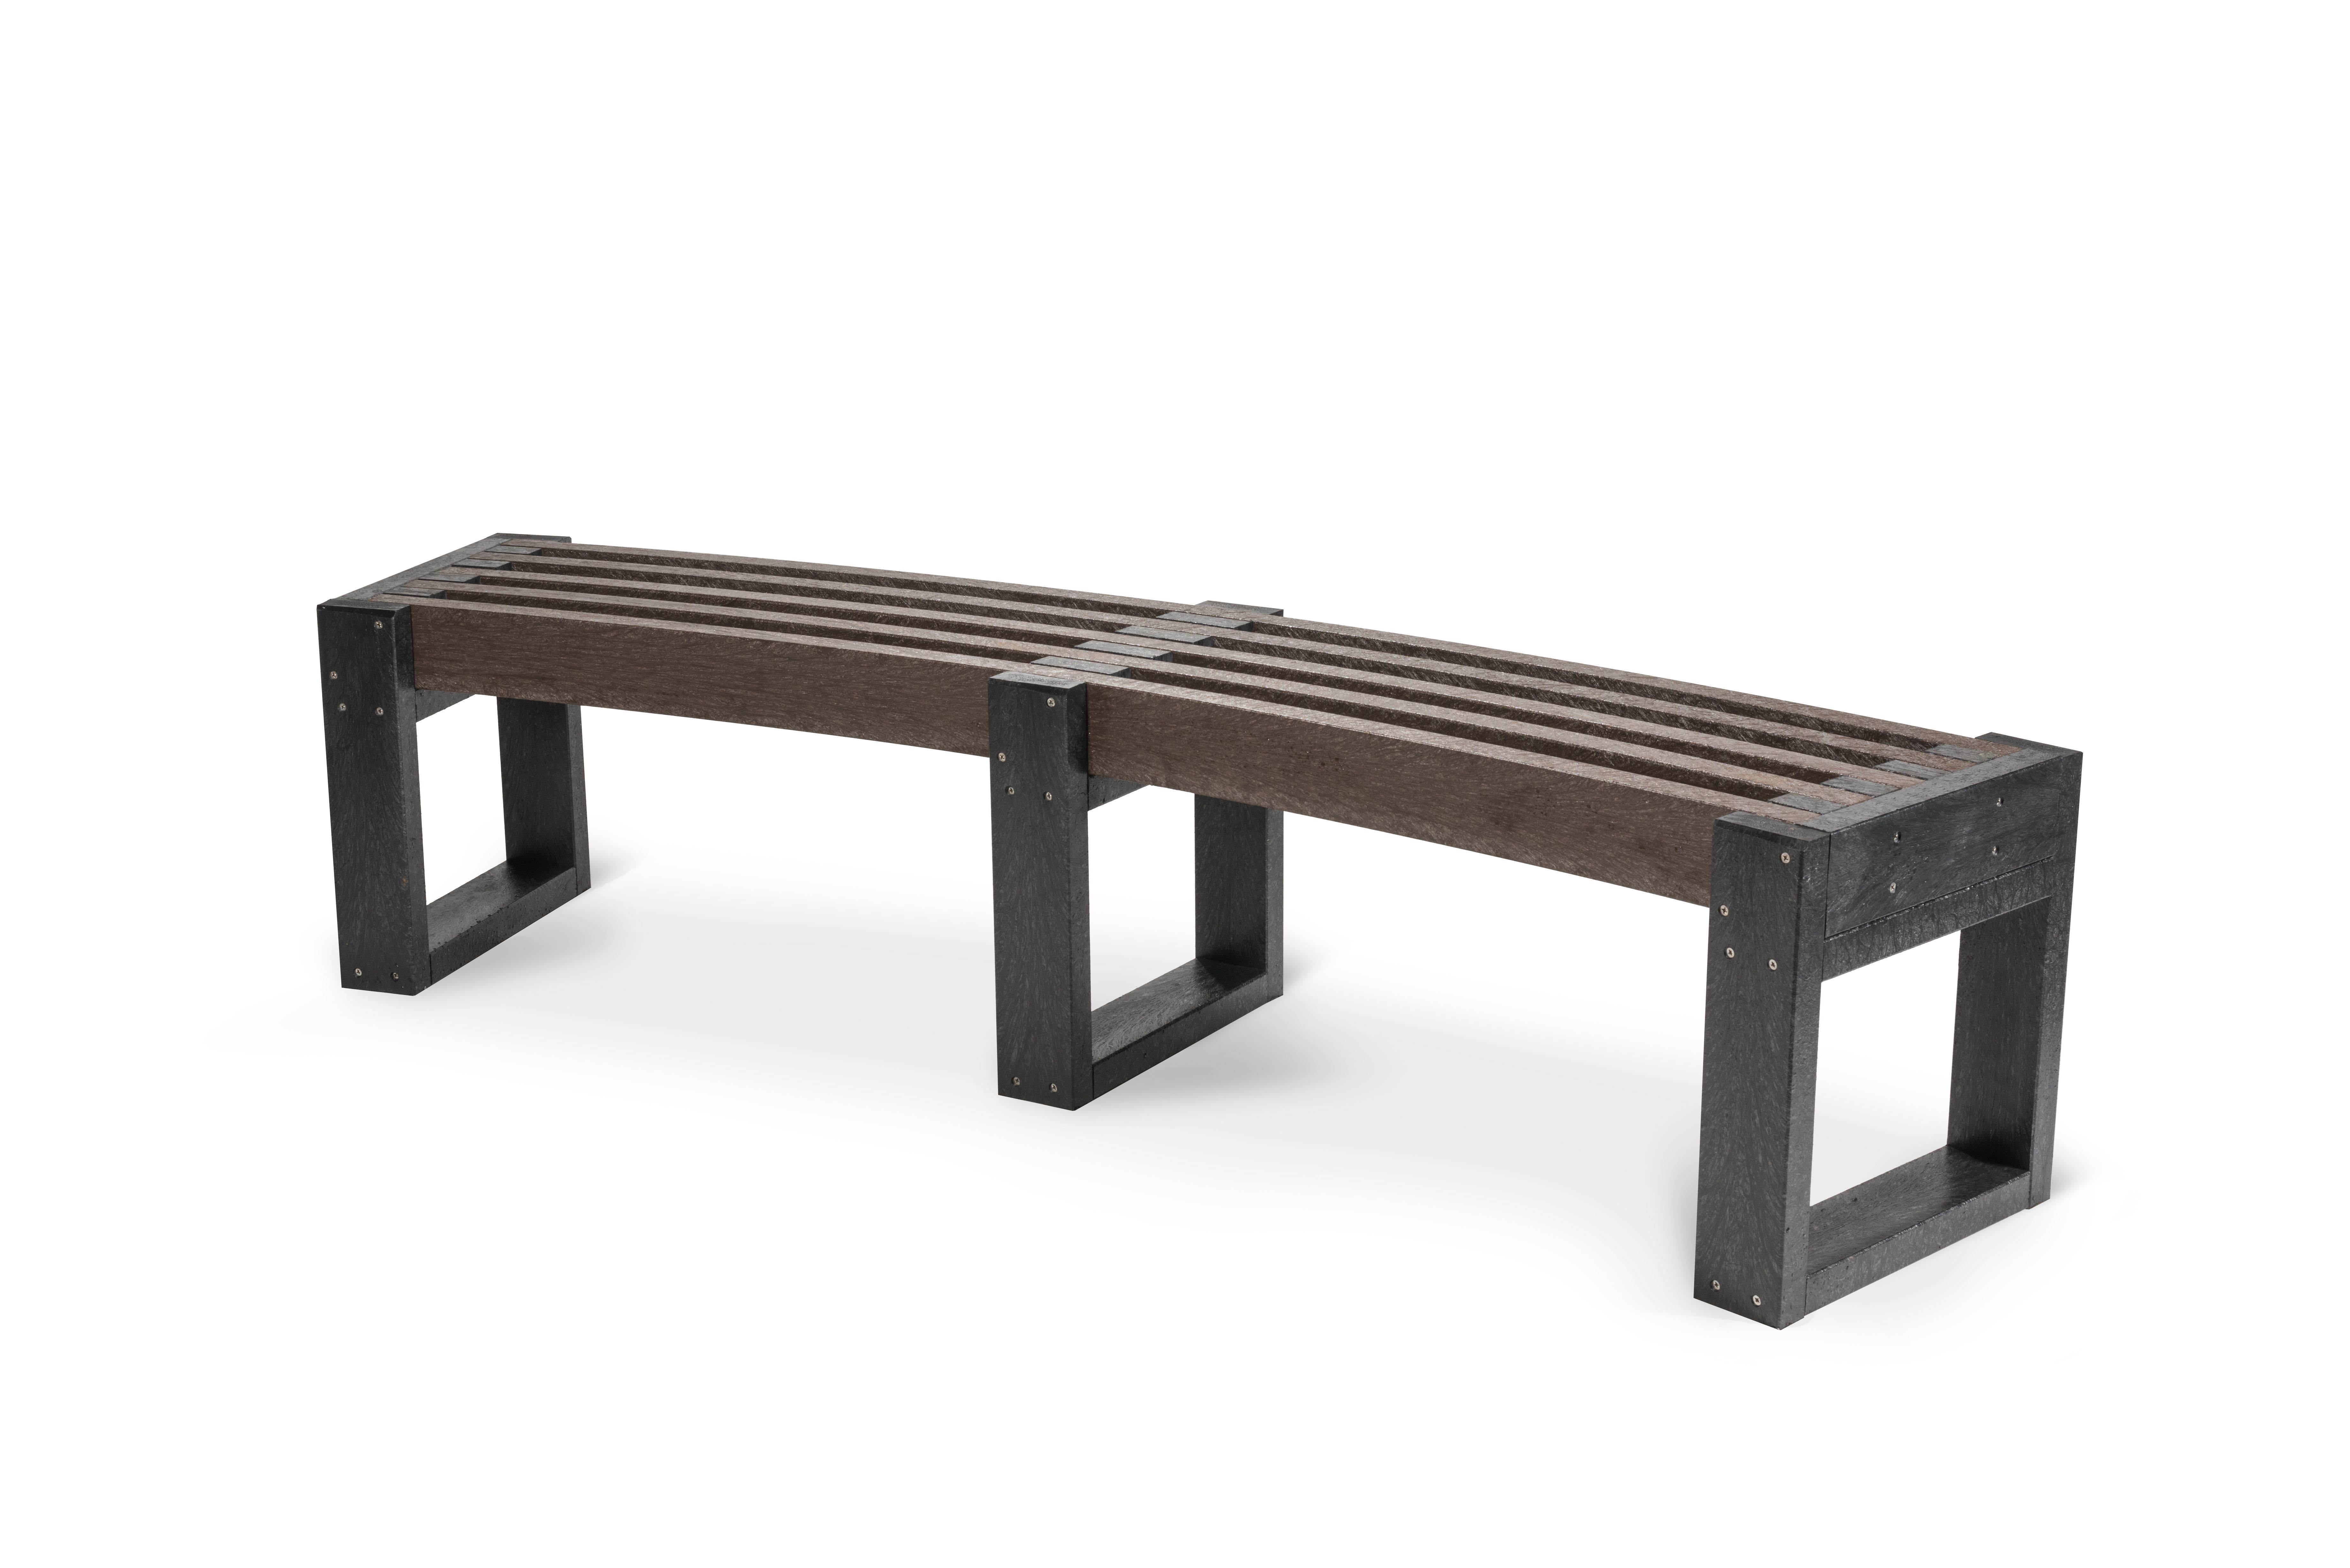 The Curved Bench Is Made From Durable Recycled Plastic And Is